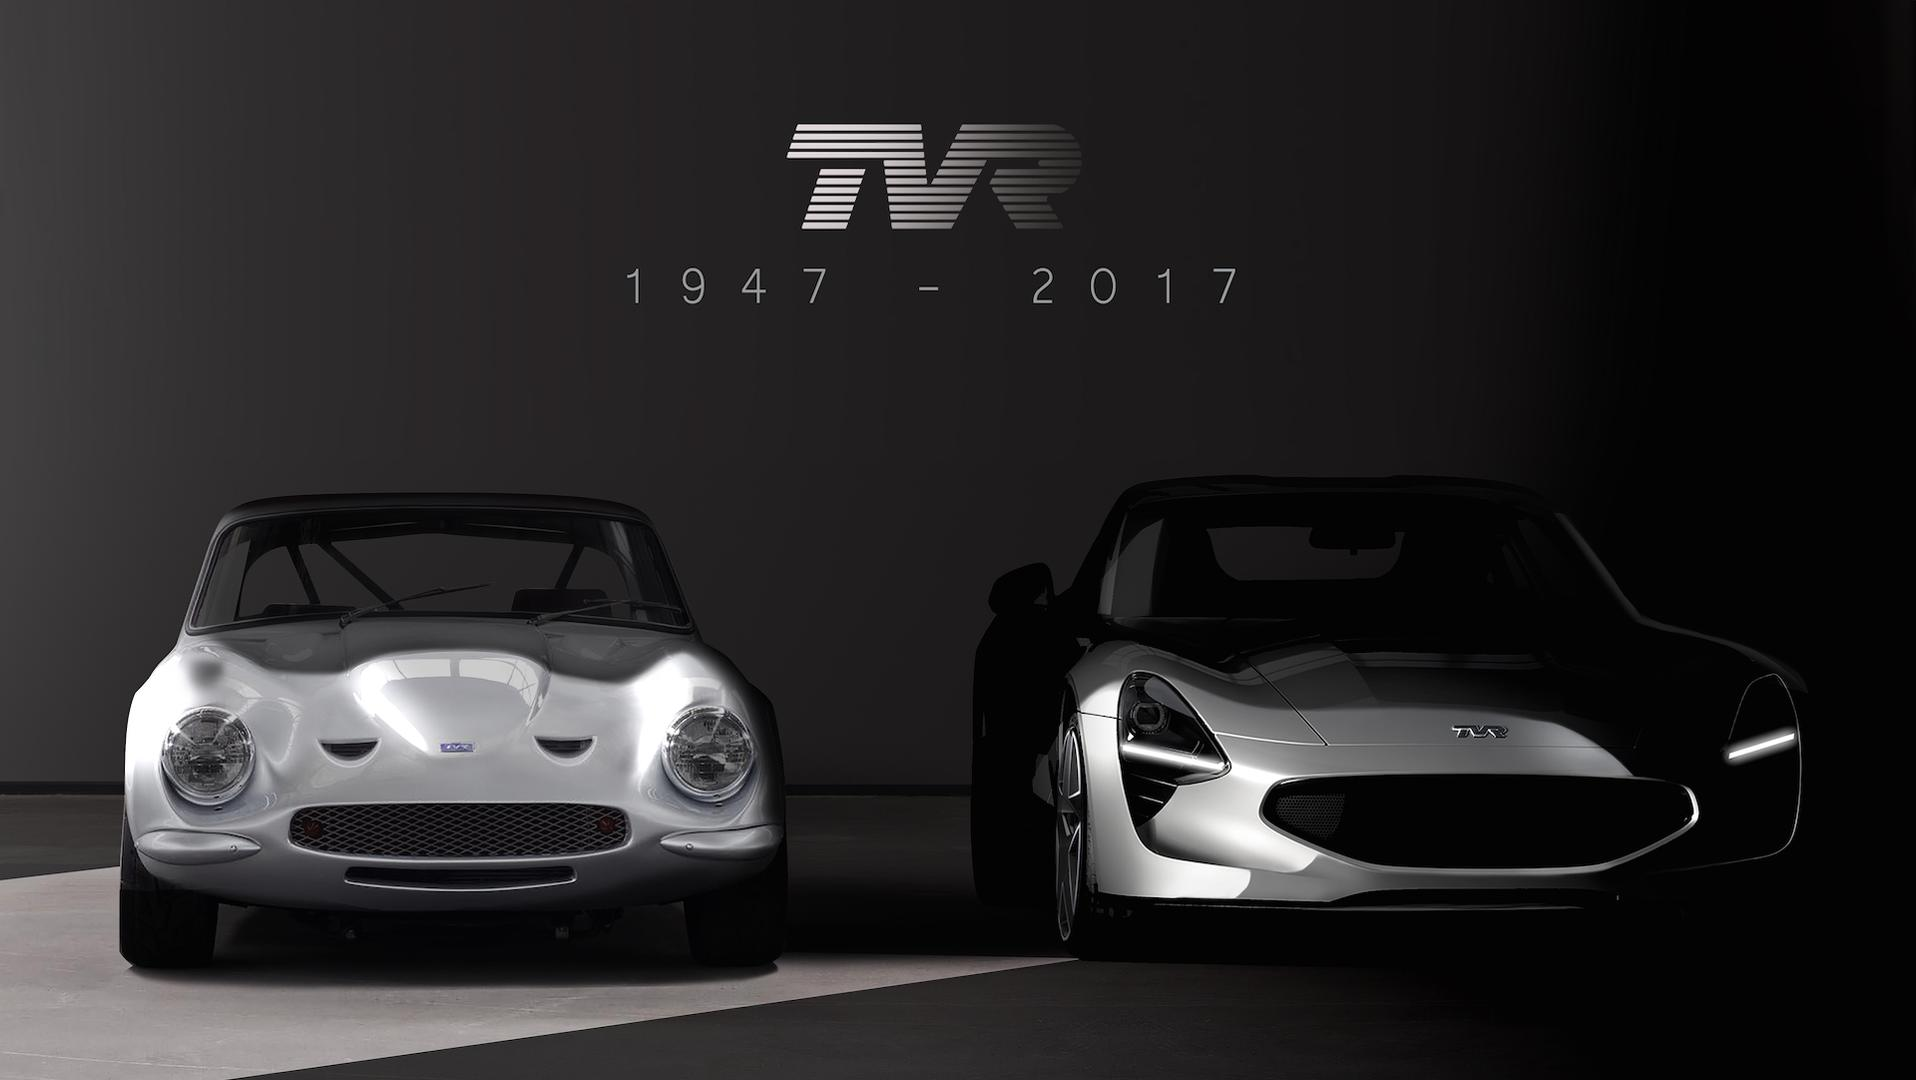 2018 tvr griffith teased one last time v8 powered sports car looks aggressive autoevolution. Black Bedroom Furniture Sets. Home Design Ideas